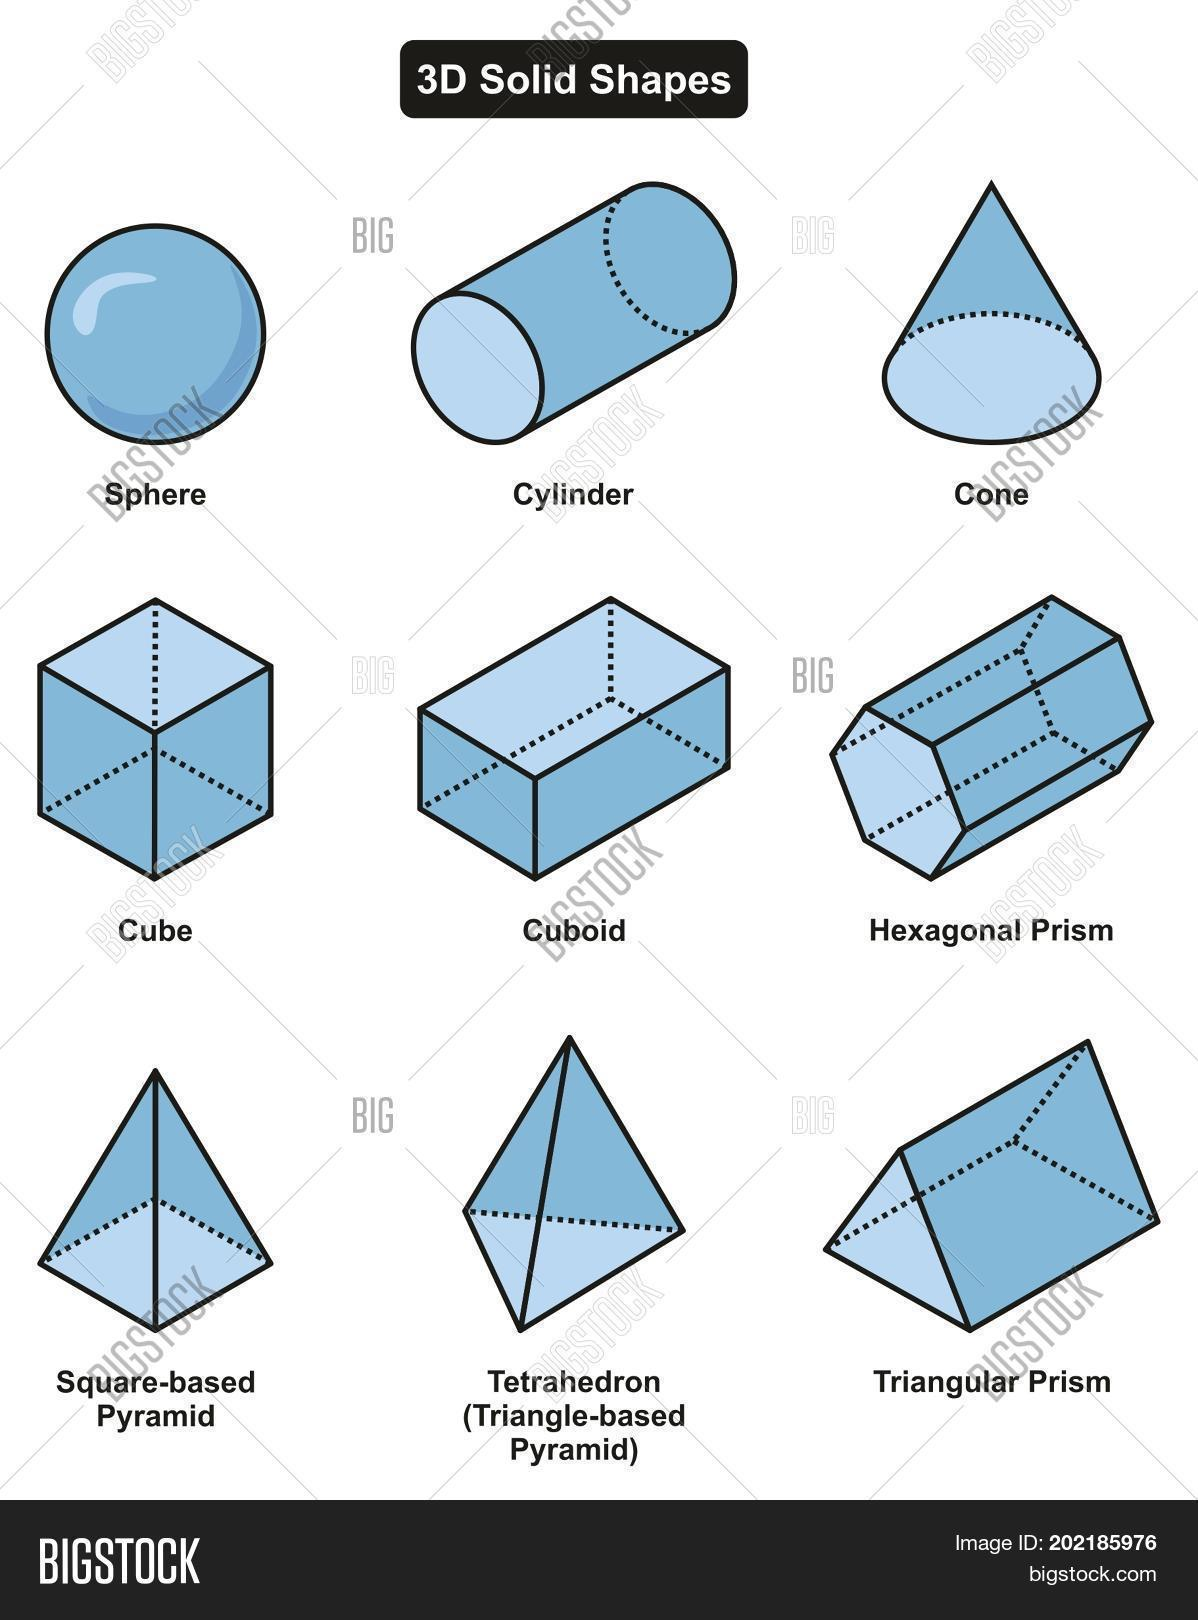 3d Solid Shapes Image Amp Photo Free Trial